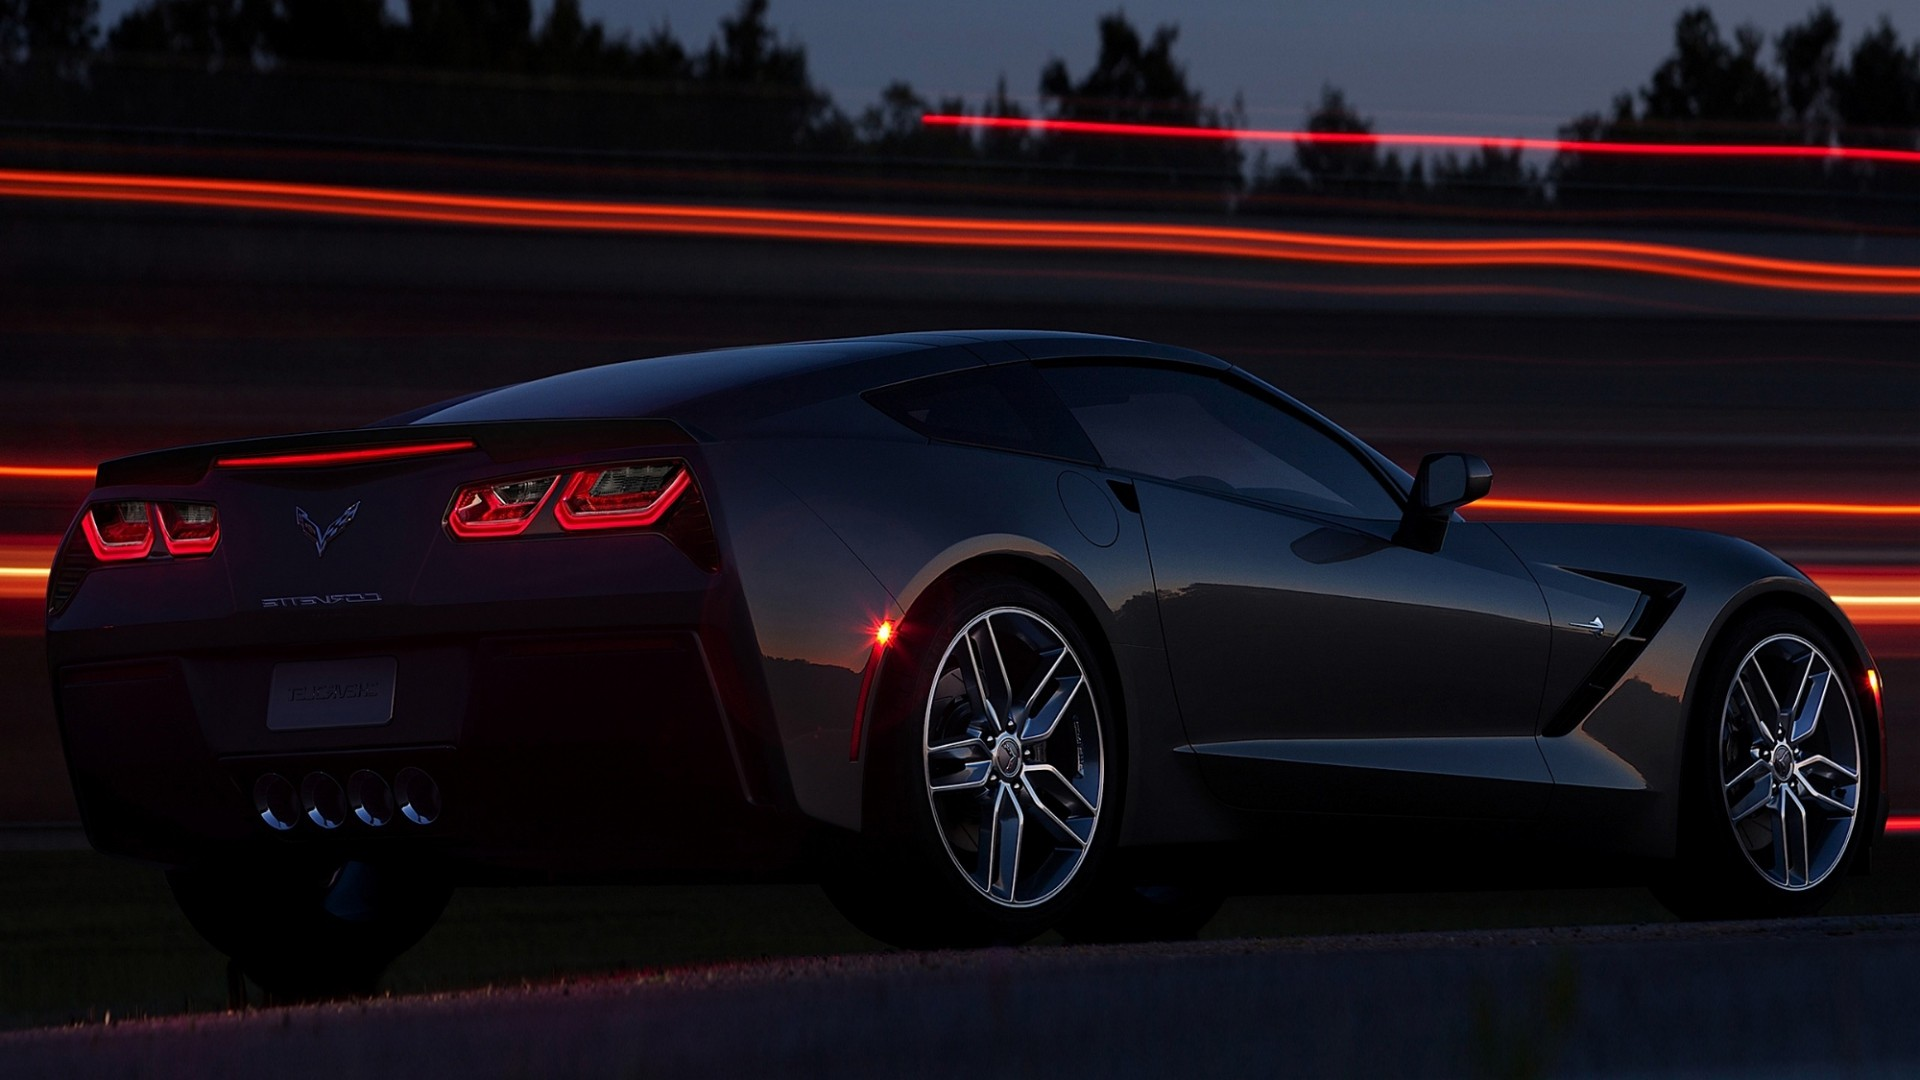 Chevrolet Corvette Stingray C7 HD Cars 4k Wallpapers Images